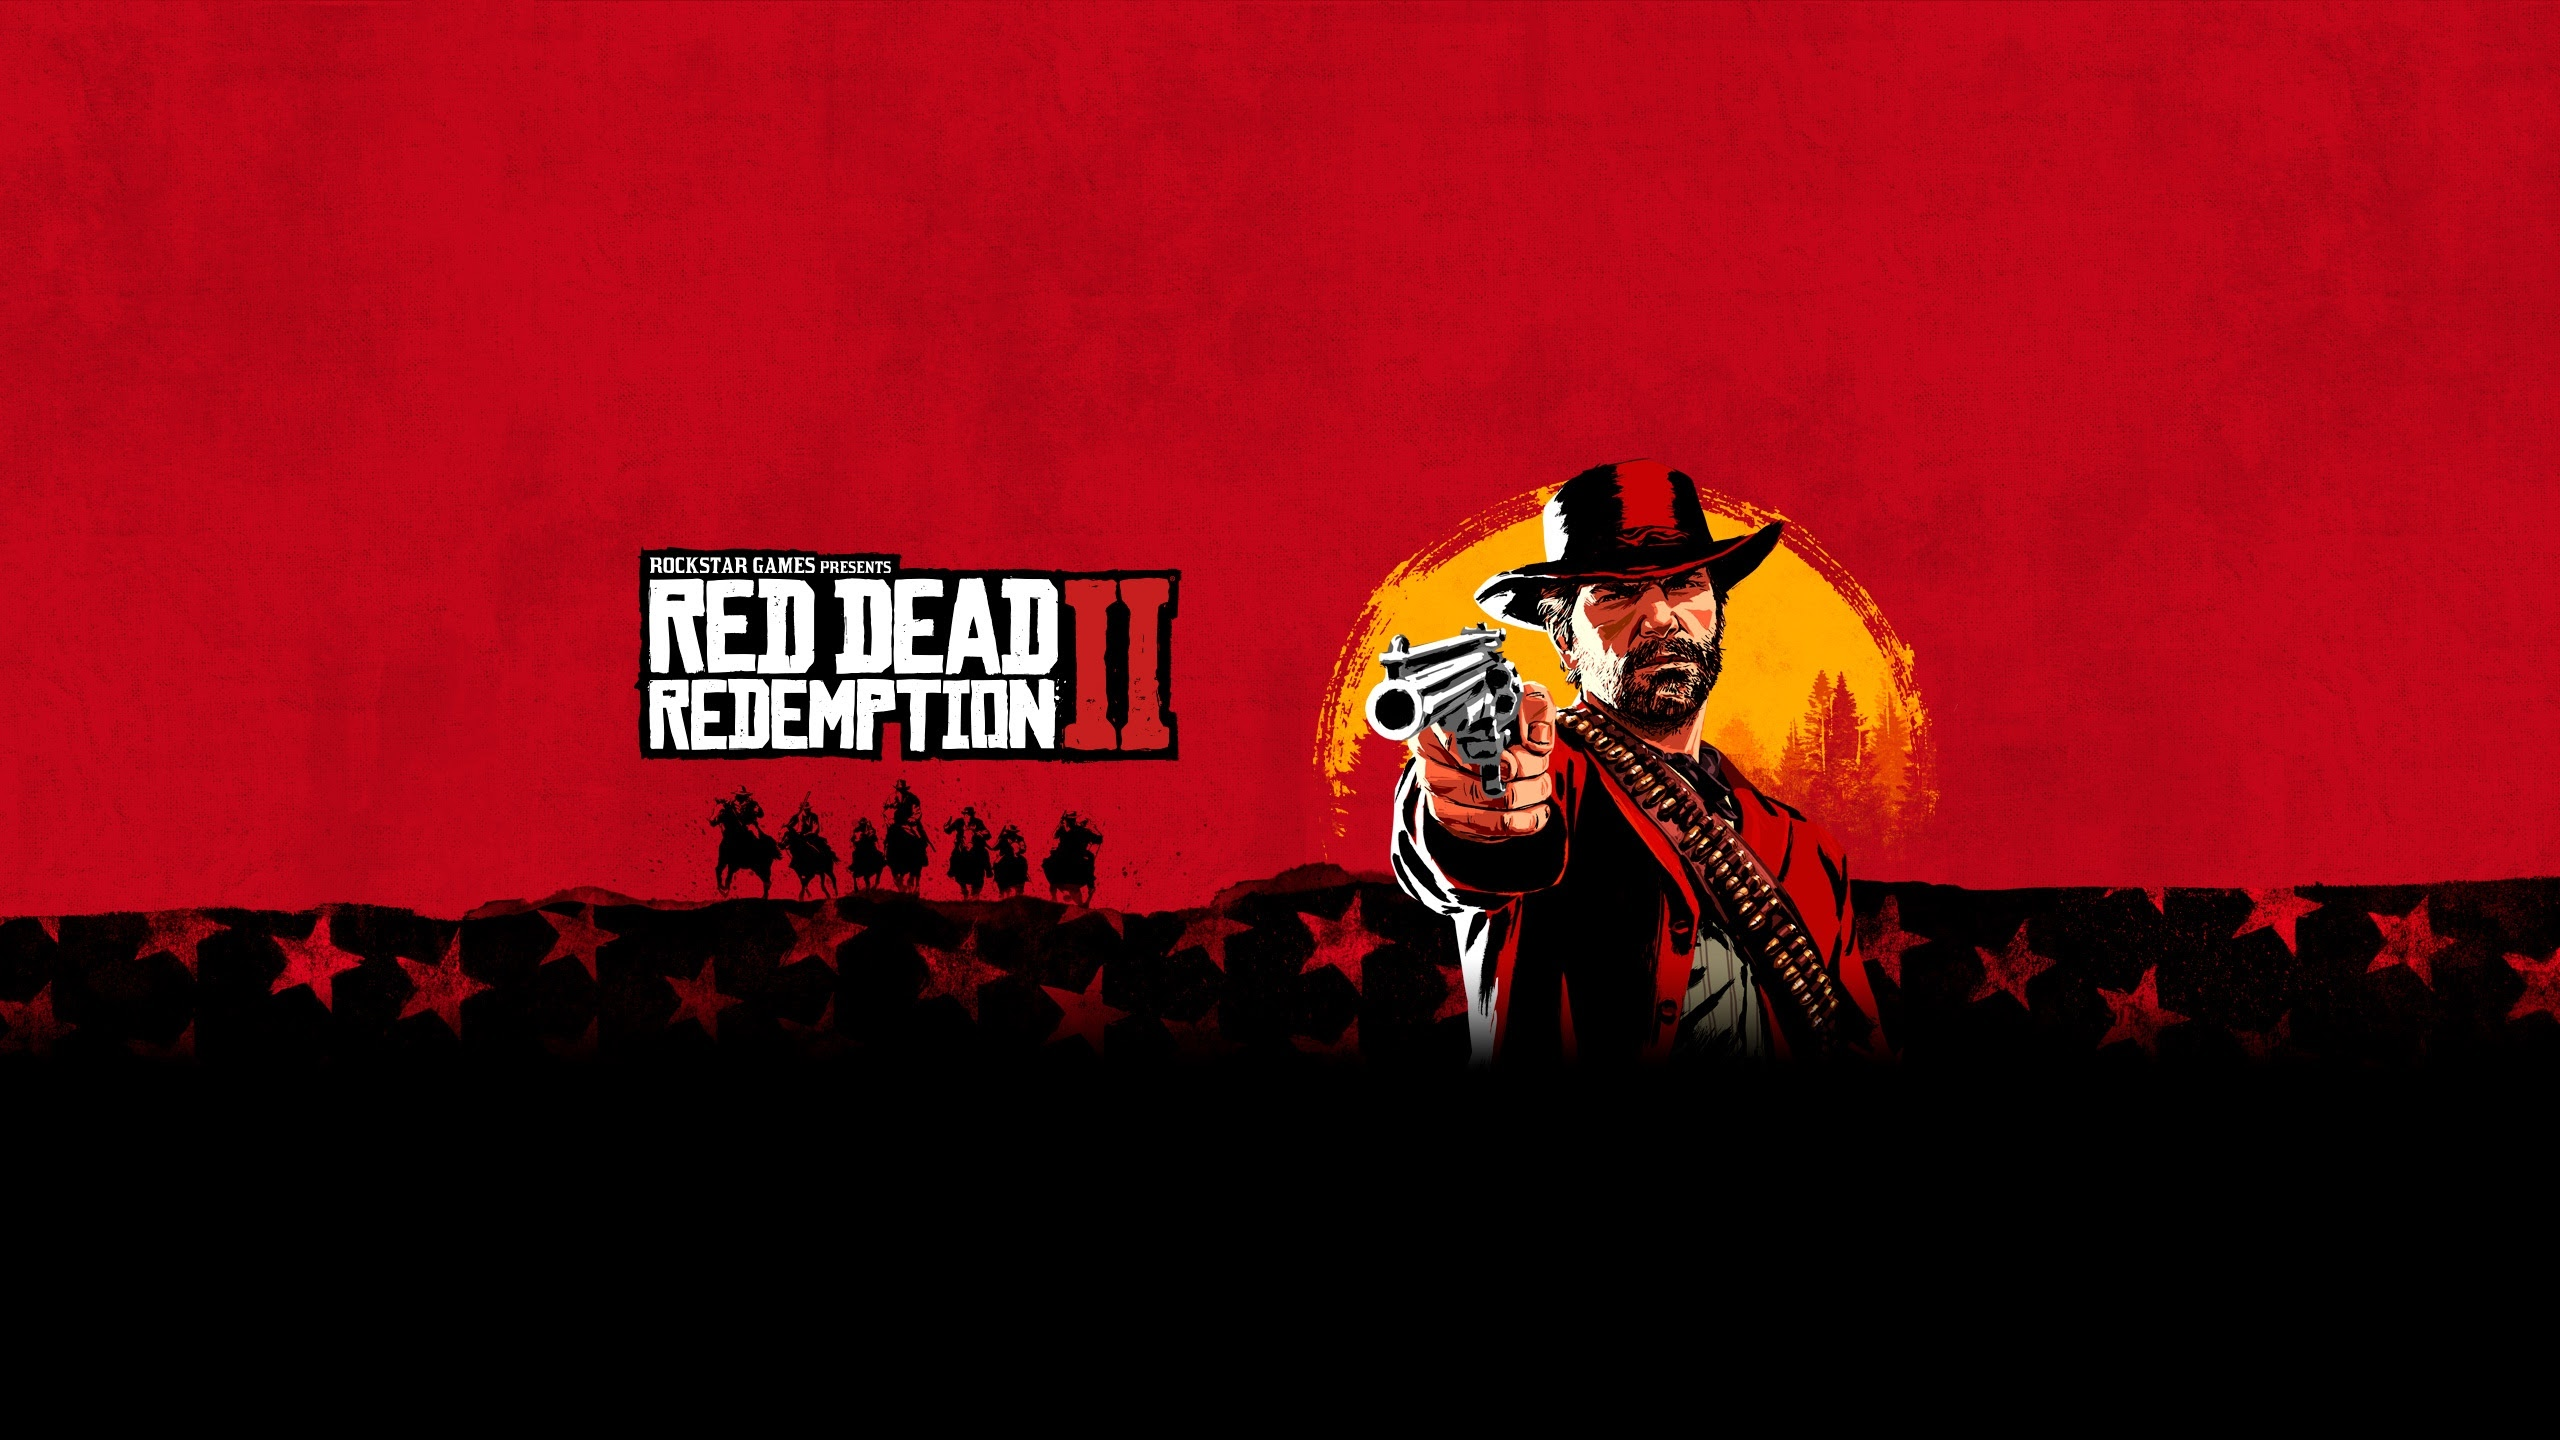 red dead redemption 2 62